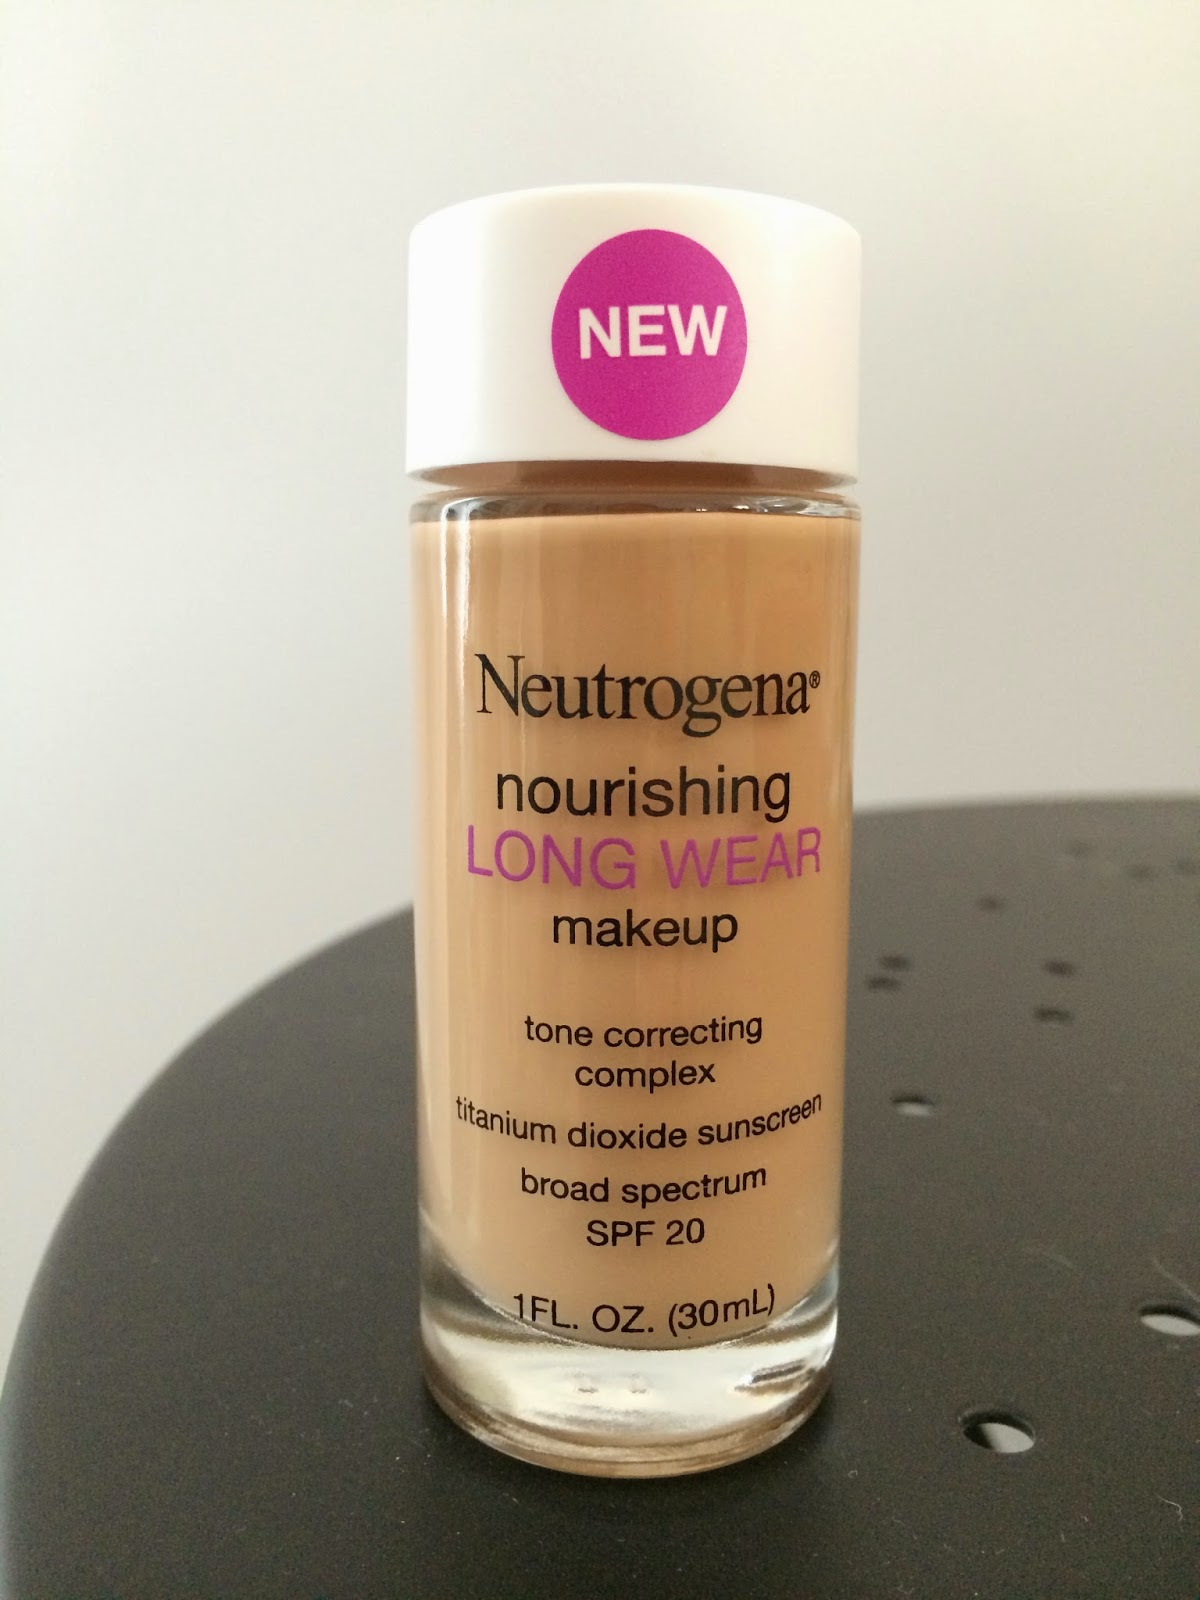 Beauty Freckled Neutrogena Nourishing Long Wear Foundation Makeup Lock It Good Boundation 7 Medium Beige Claims From Lasts 12 Hours Resists Heat And Humidity Erases Skin Imperfections Tone Correcting Complex Antioxidants Soy